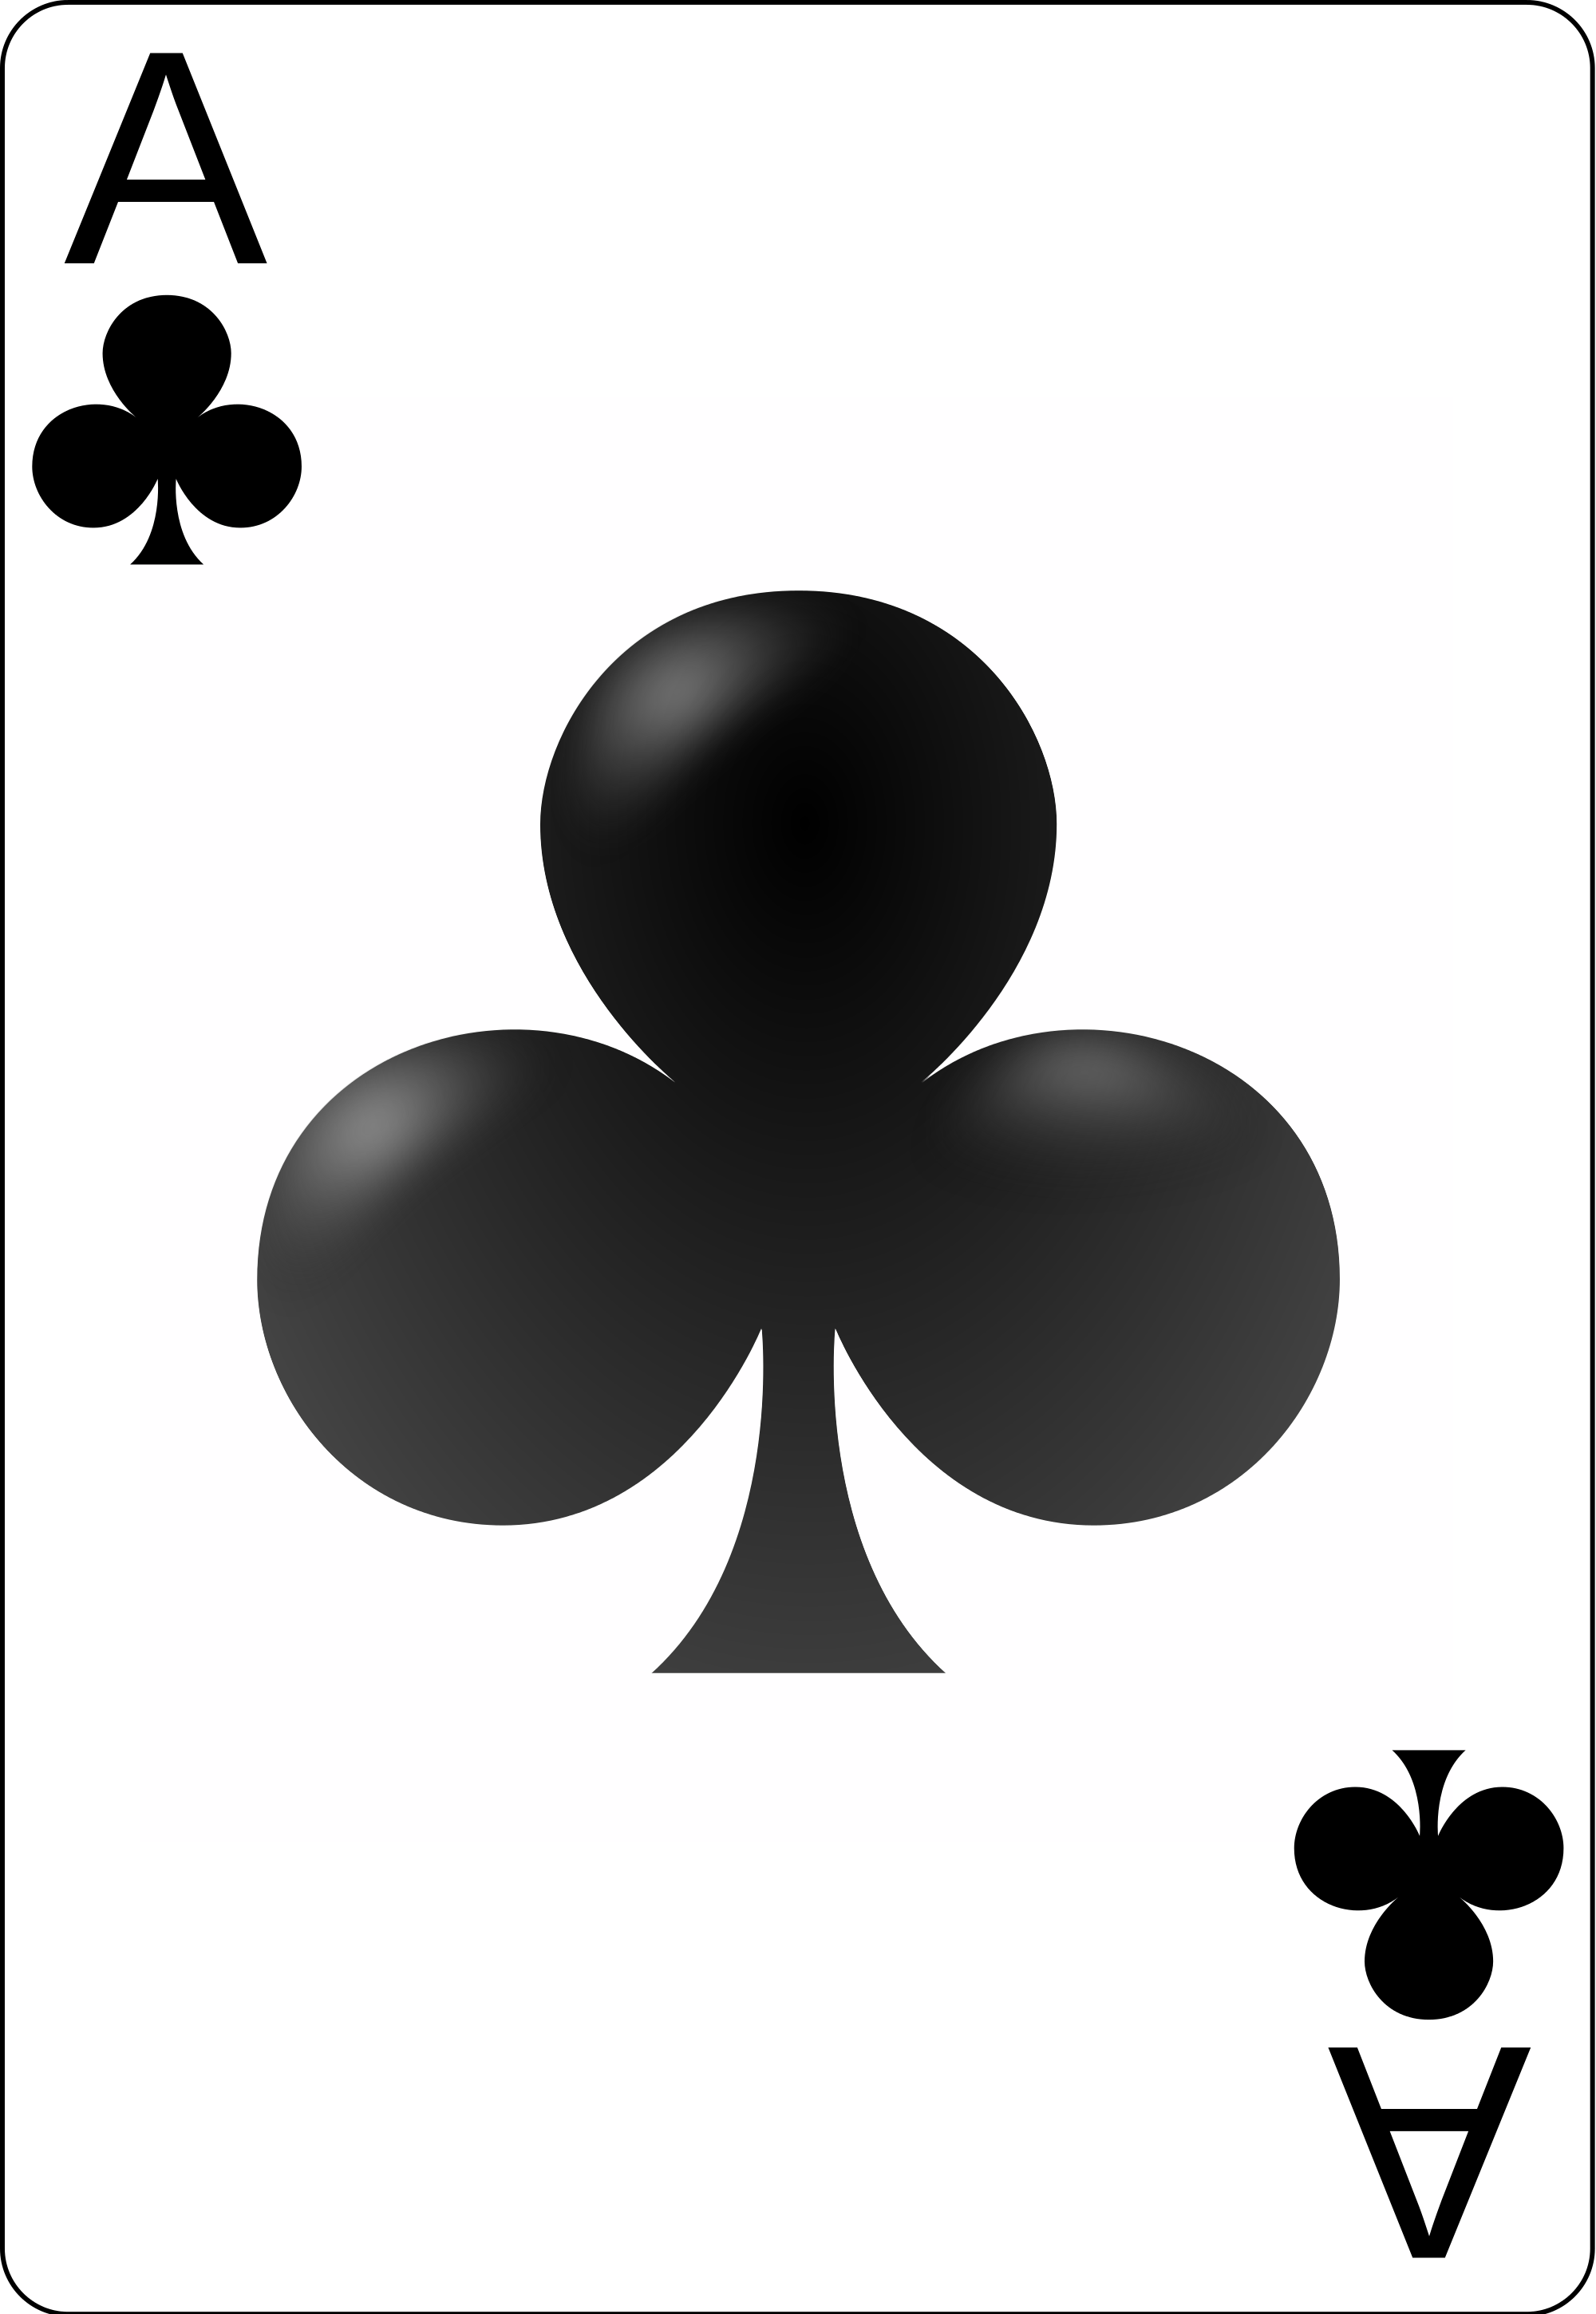 Ace of clubs clipart clipart freeuse download File:Ace of clubs.svg - Wikimedia Commons clipart freeuse download